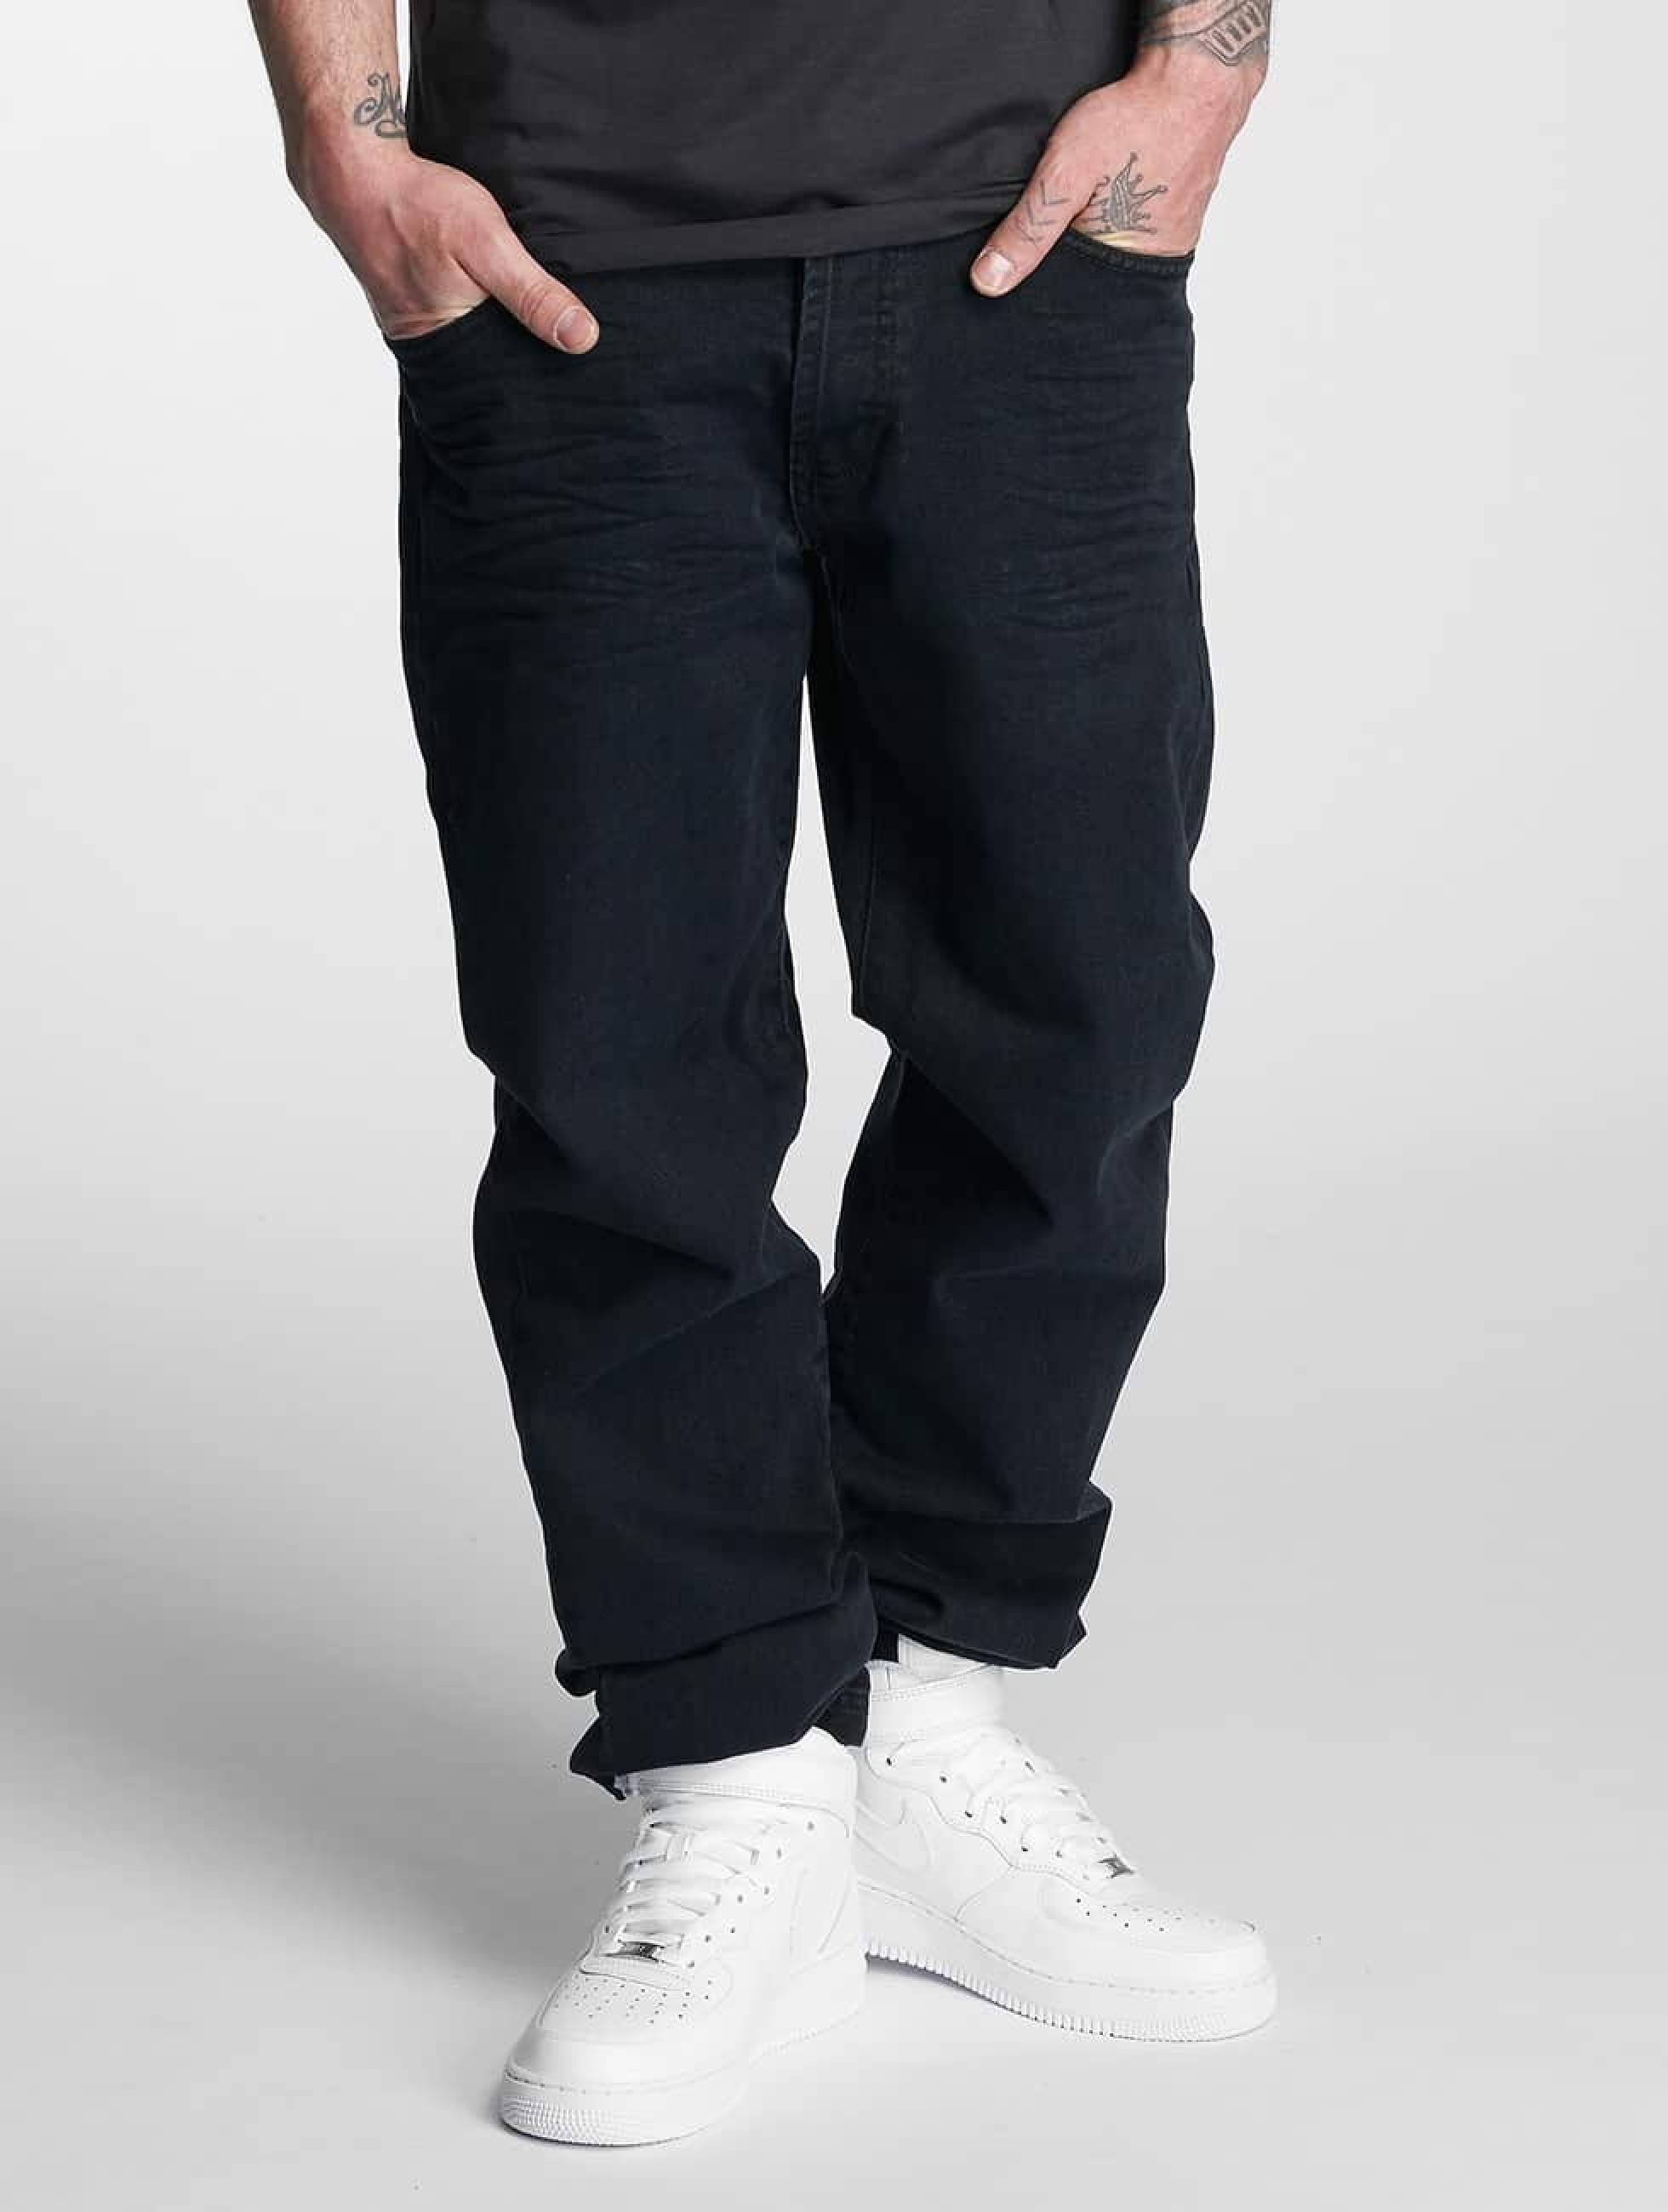 Thug Life / Loose Fit Jeans Carrot in black W 33 L 34